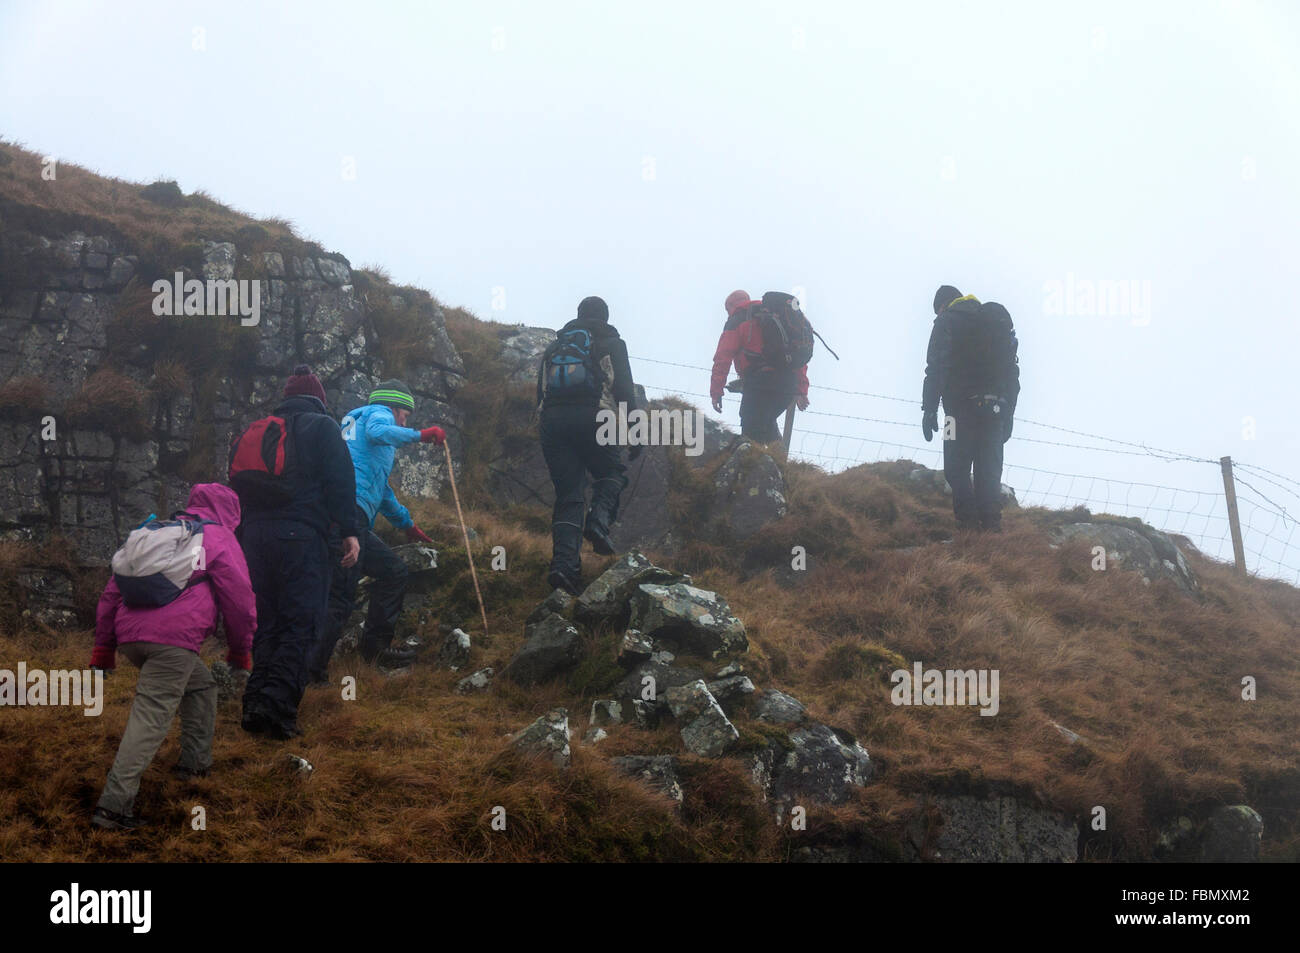 Walkers in mist on Common Mountain above Ardara, County Donegal, Ireland - Stock Image